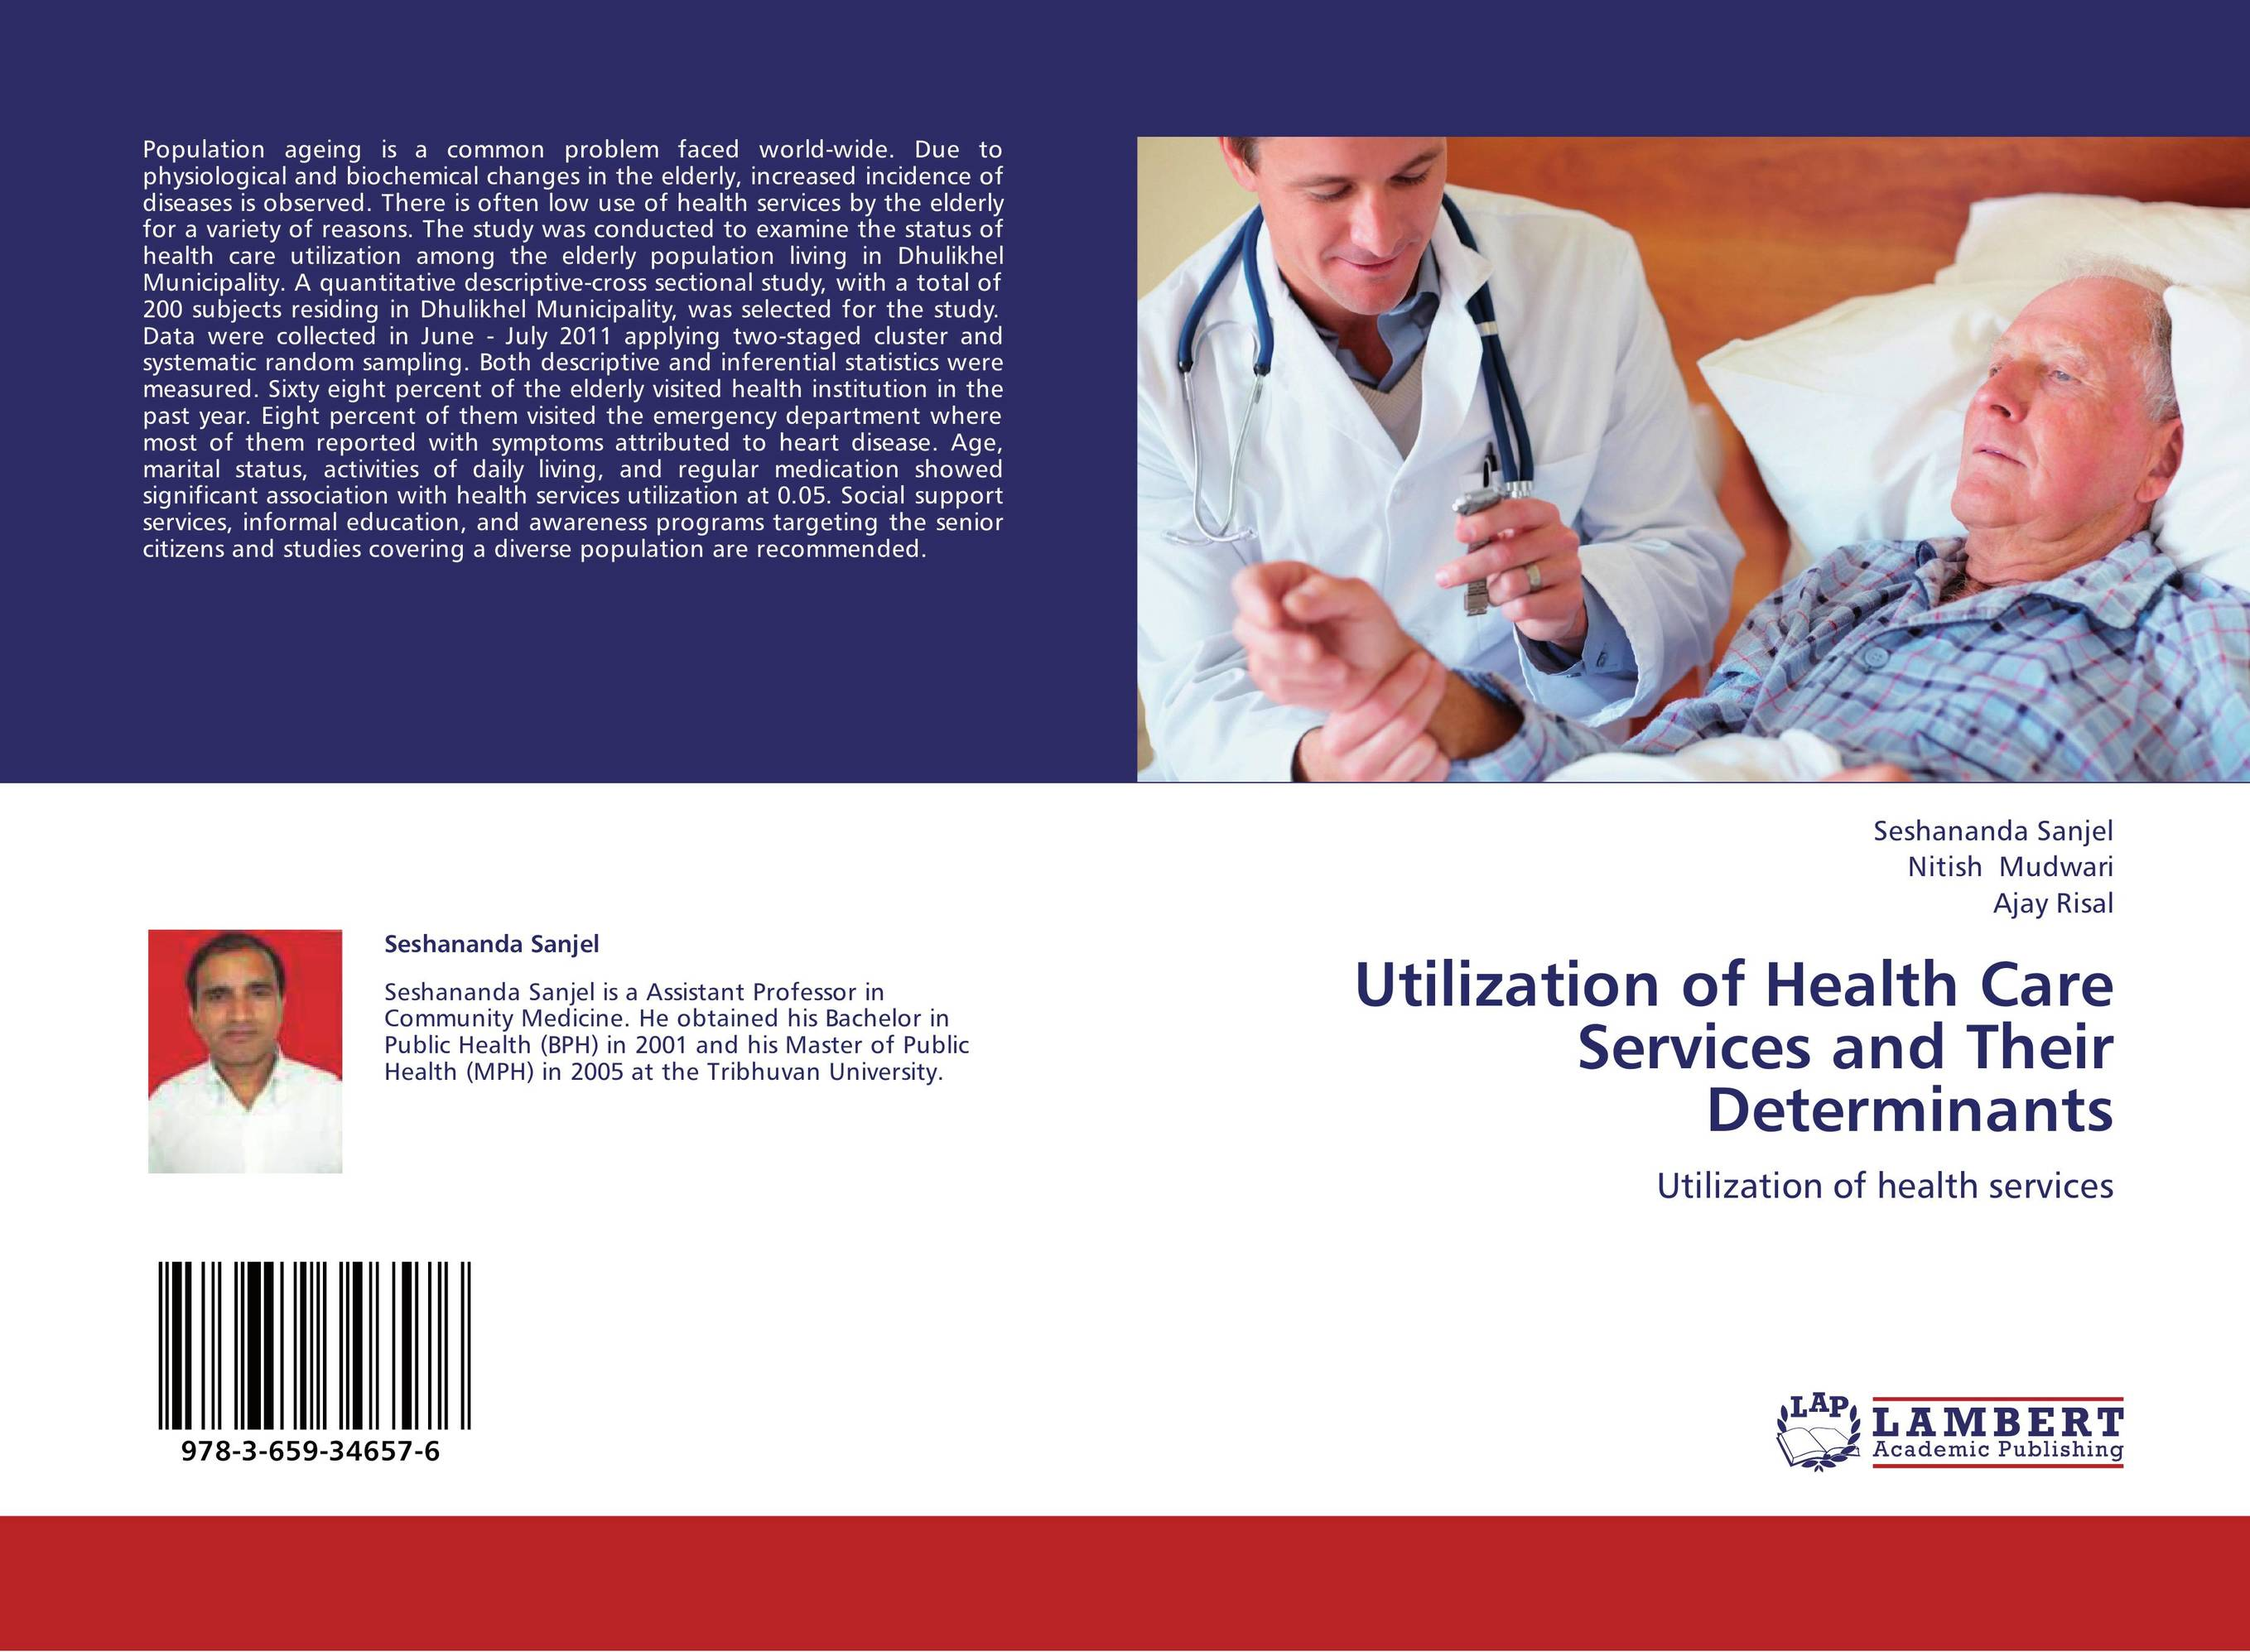 health care utilization essay The factors in this situation that may affect john's health care utlllzatlon are his form of insurance, the area he lives in, facllltles that accepts his insurance, his health conditions, his level of income, and transportation.